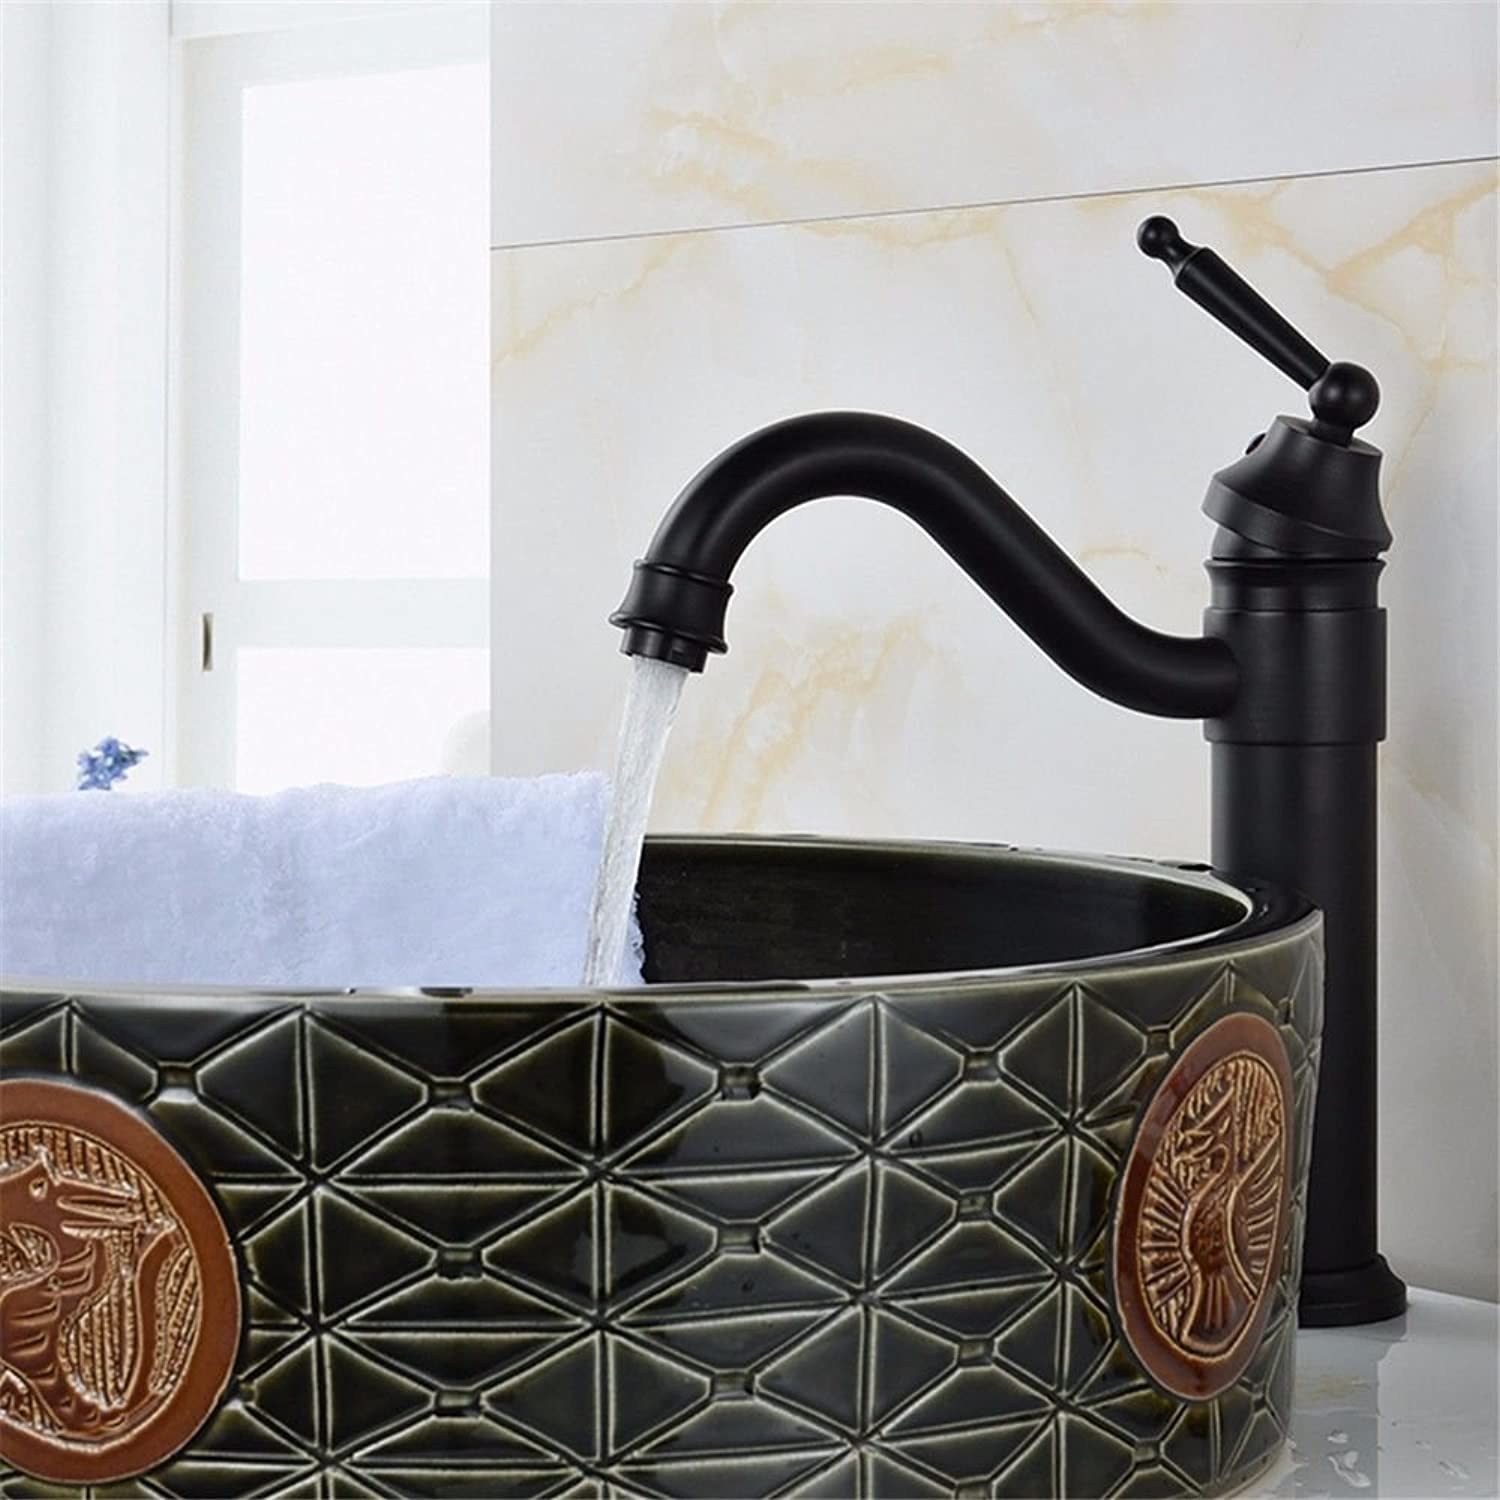 Hlluya Professional Sink Mixer Tap Kitchen Faucet Black antique wash basin mixer full copper basins and cold water and high surface basin mixer basin bathroom